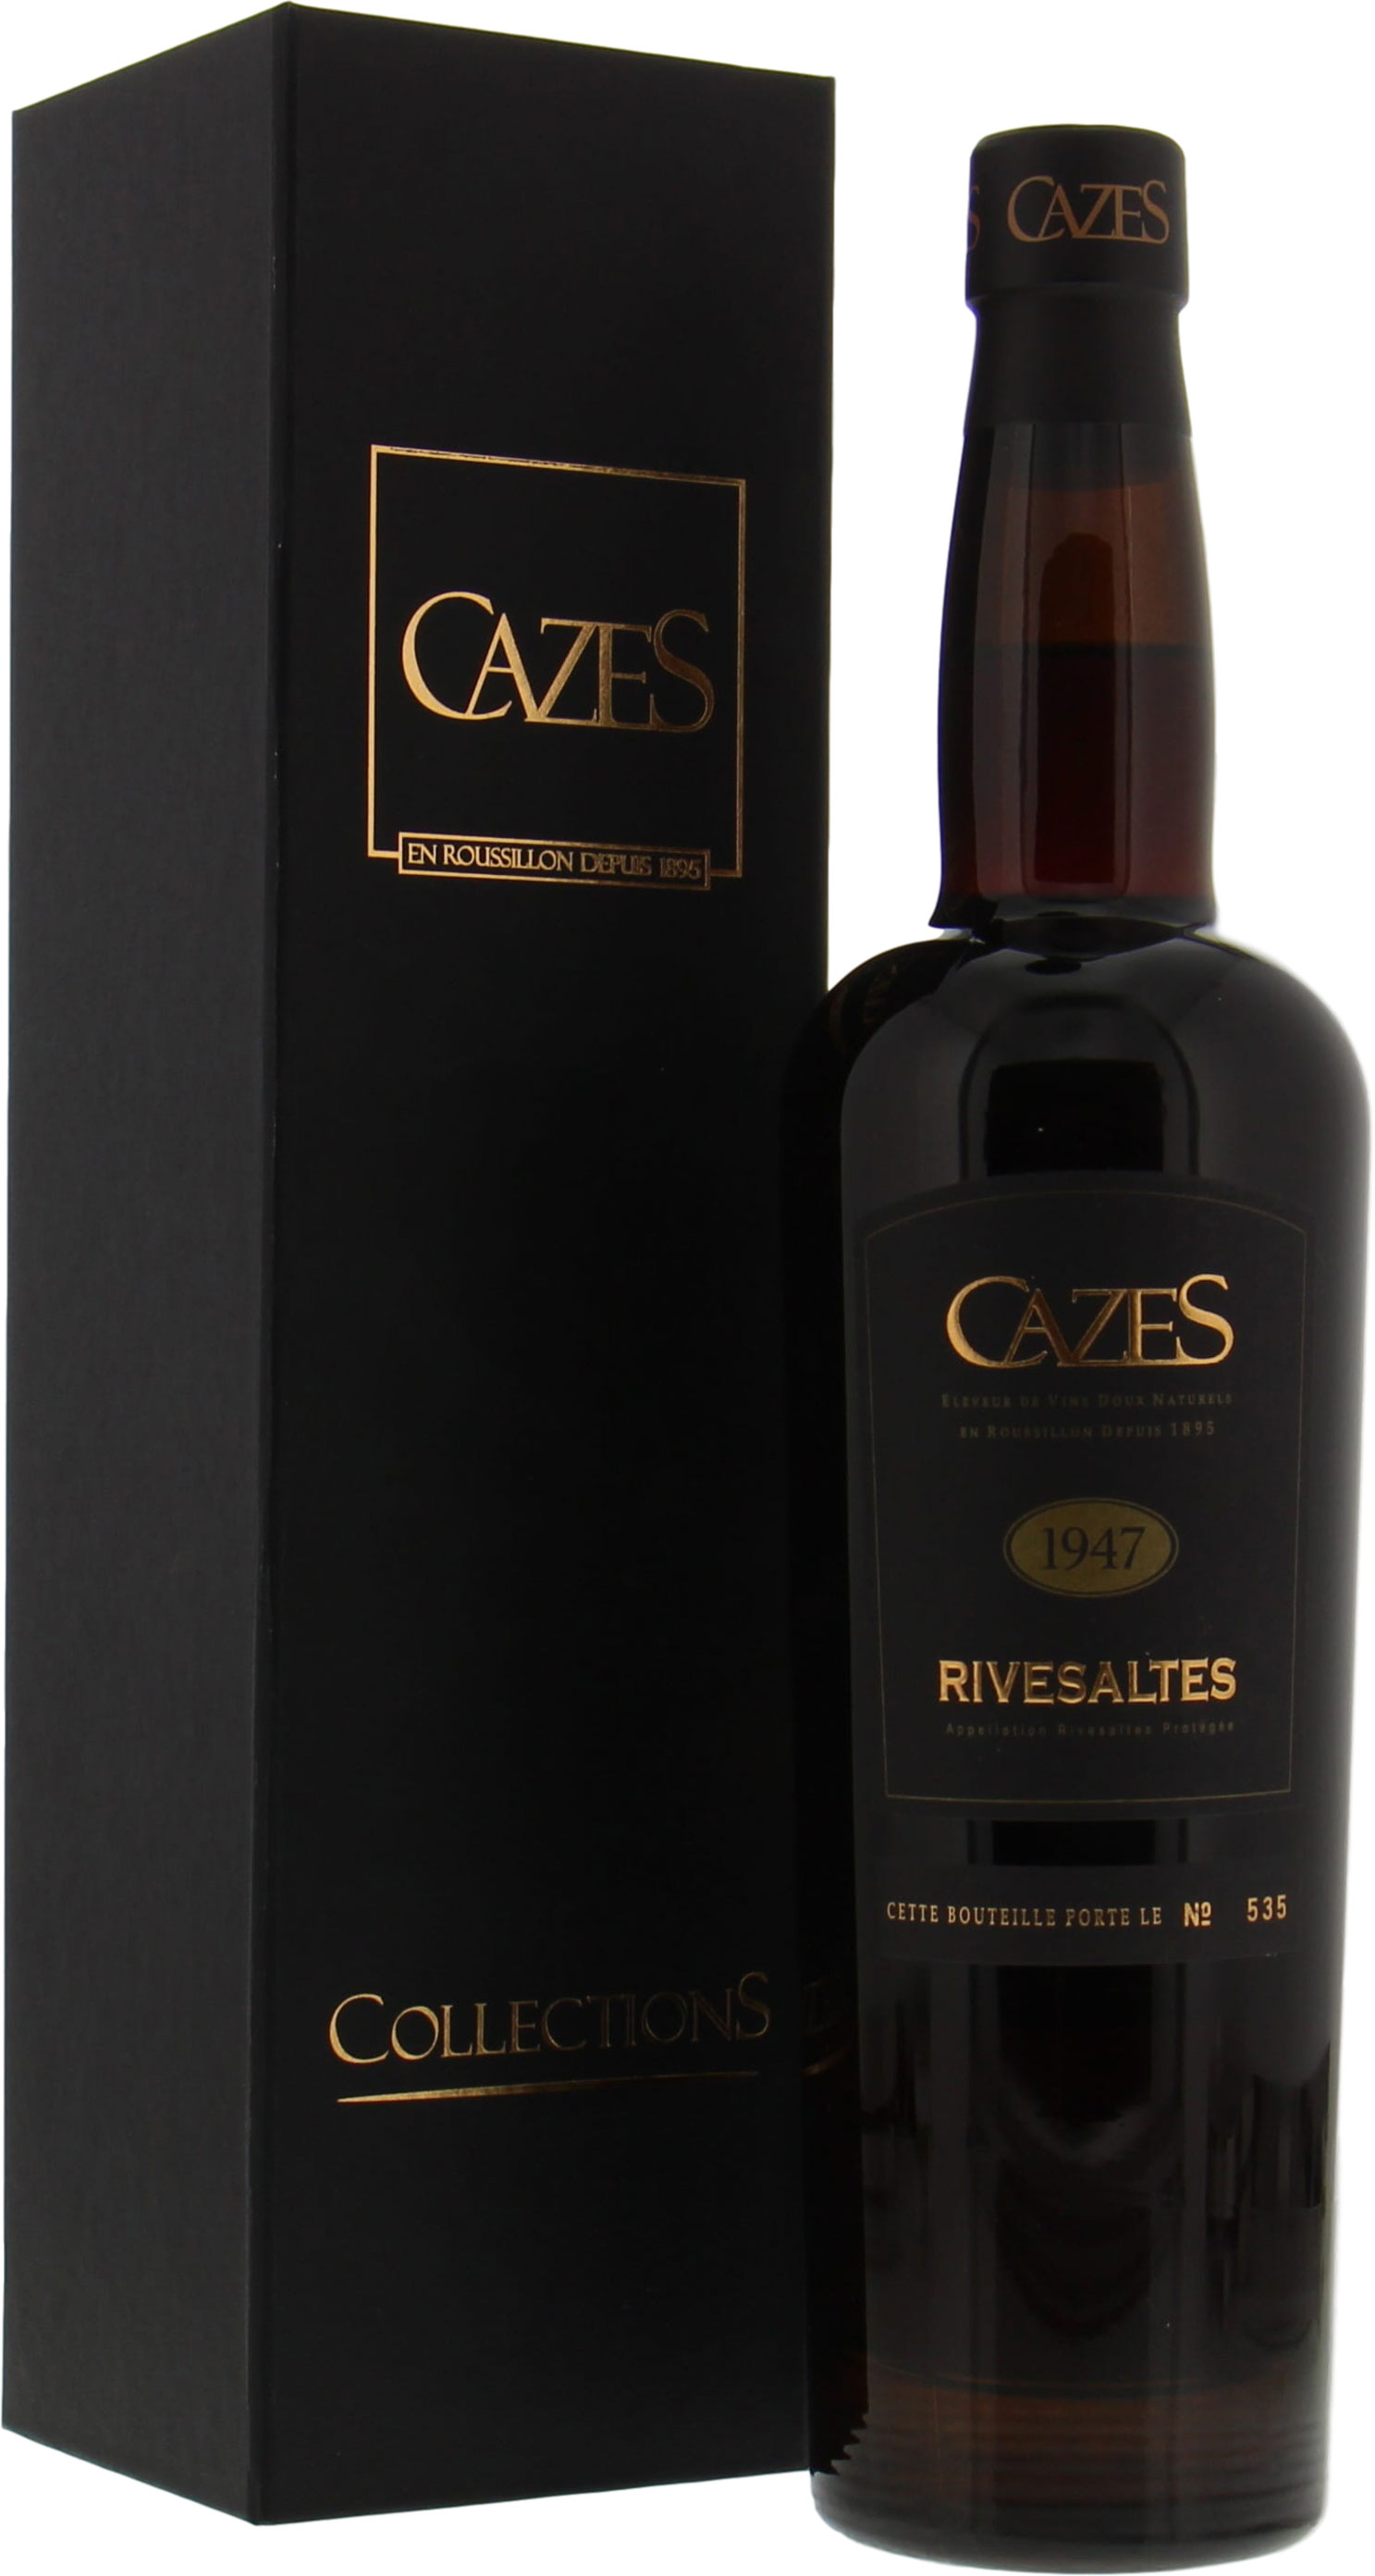 Domaine Cazes - VDN Rivesaltes Collection Cazes